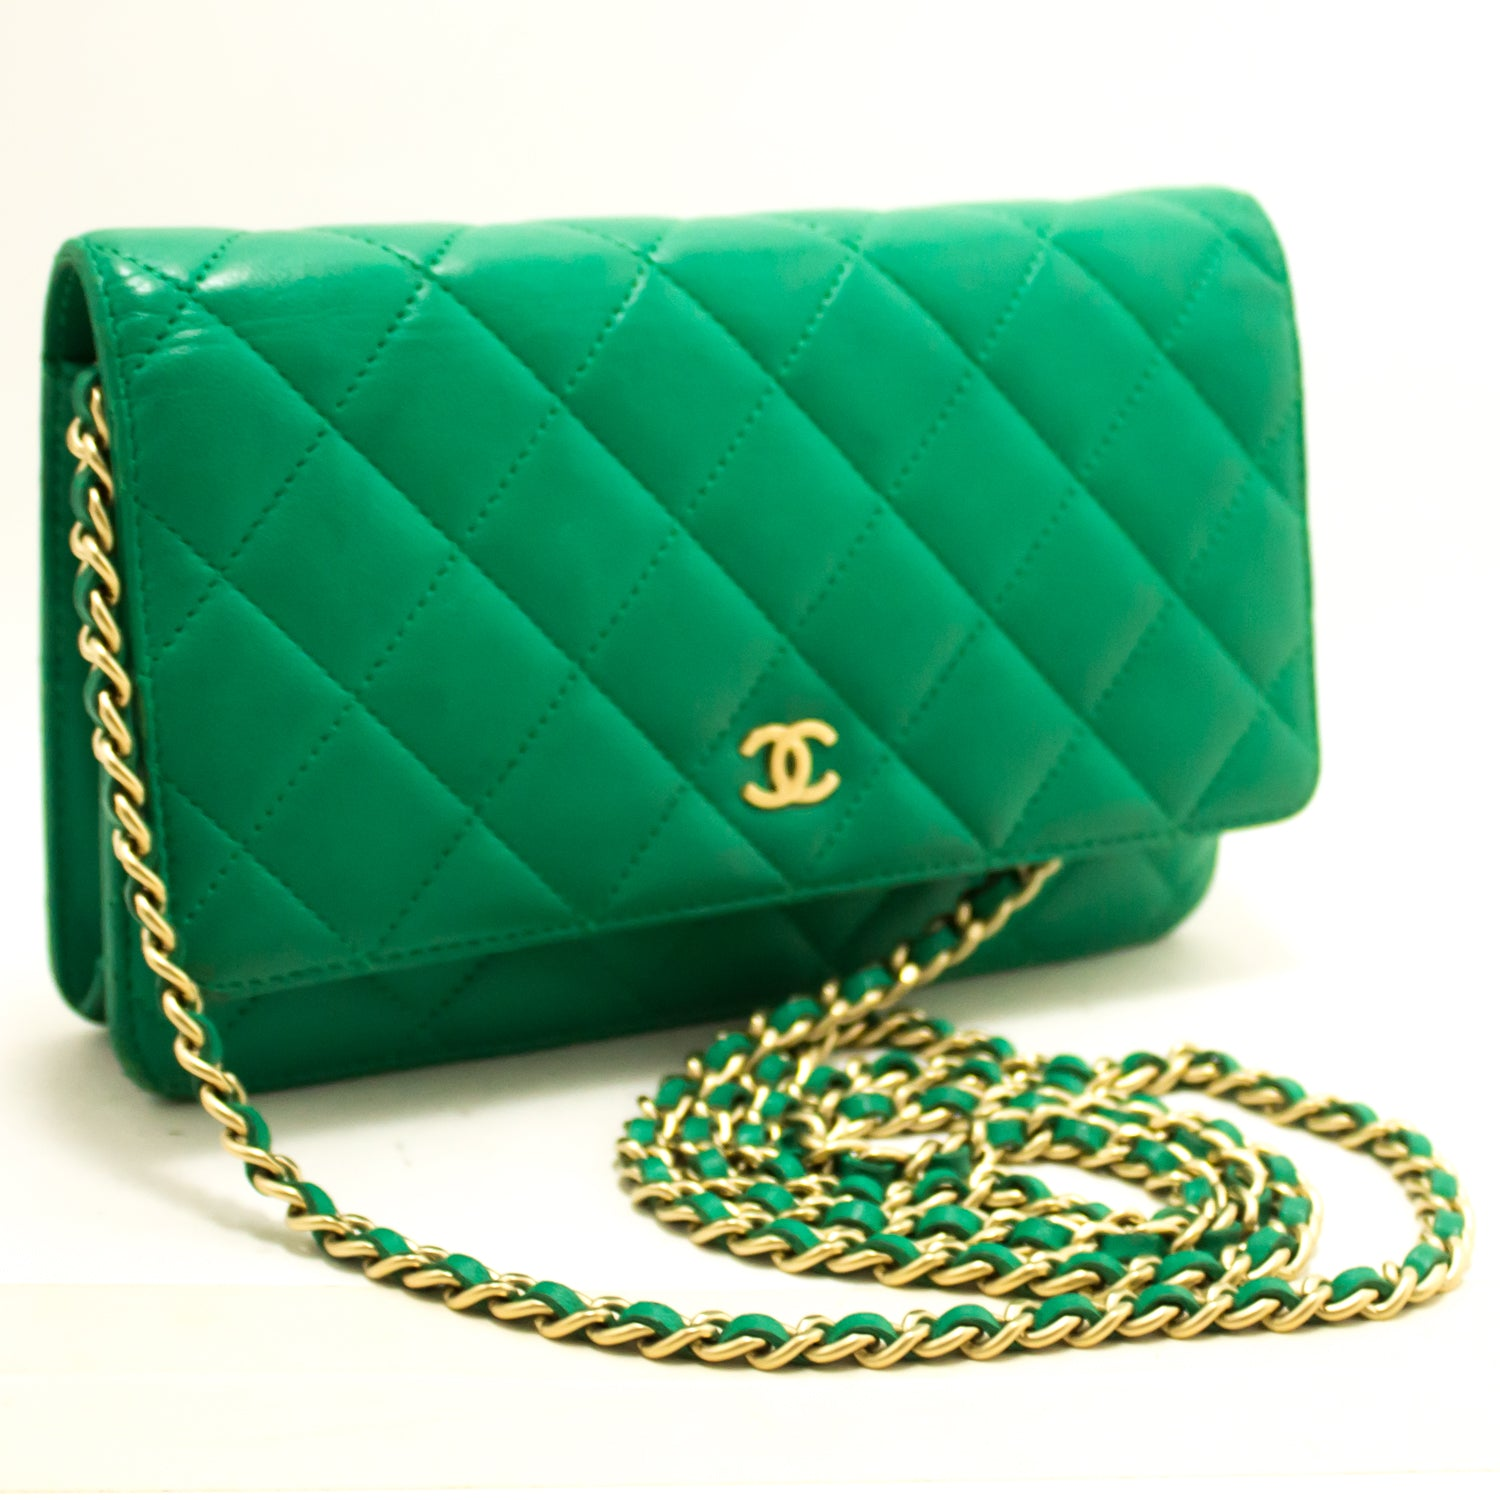 09678a9493ff6e ... CHANEL Green Wallet On Chain WOC Shoulder Bag Crossbody Clutch L97- Chanel-hannari- ...